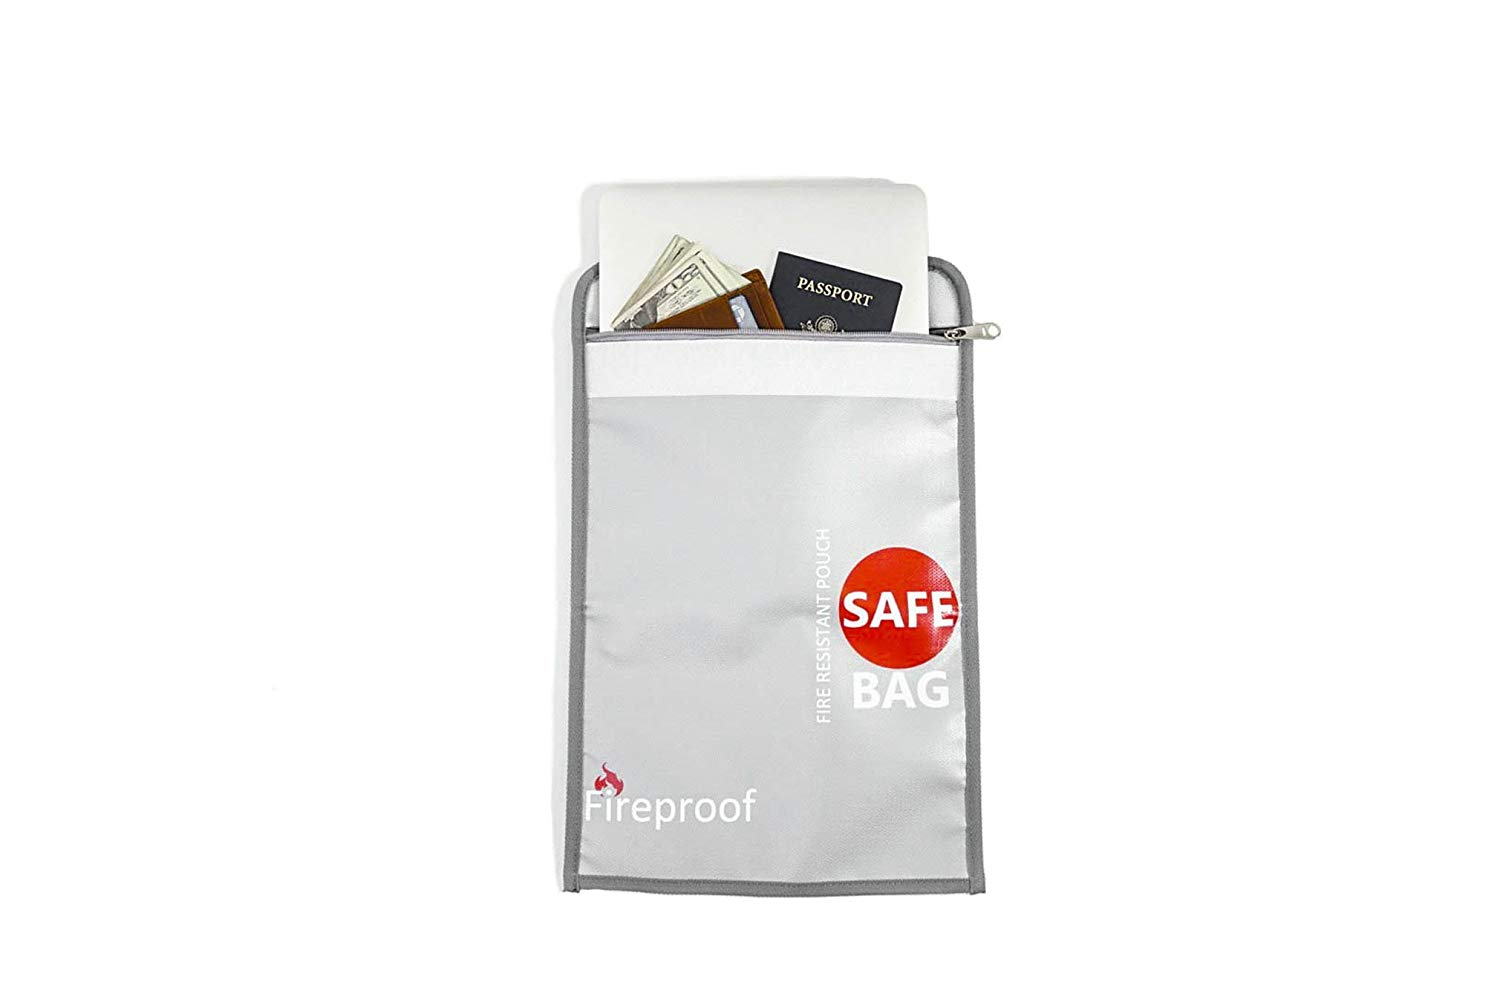 """Pure Purpose 15""""x 11"""" Fireproof Document Bag - NEW AND IMPROVED Non-itchy Silicone Coated Fire Resistant Fiberglass and Water Resistant - Safe Storage for Documents, Money, Passports and valuables"""